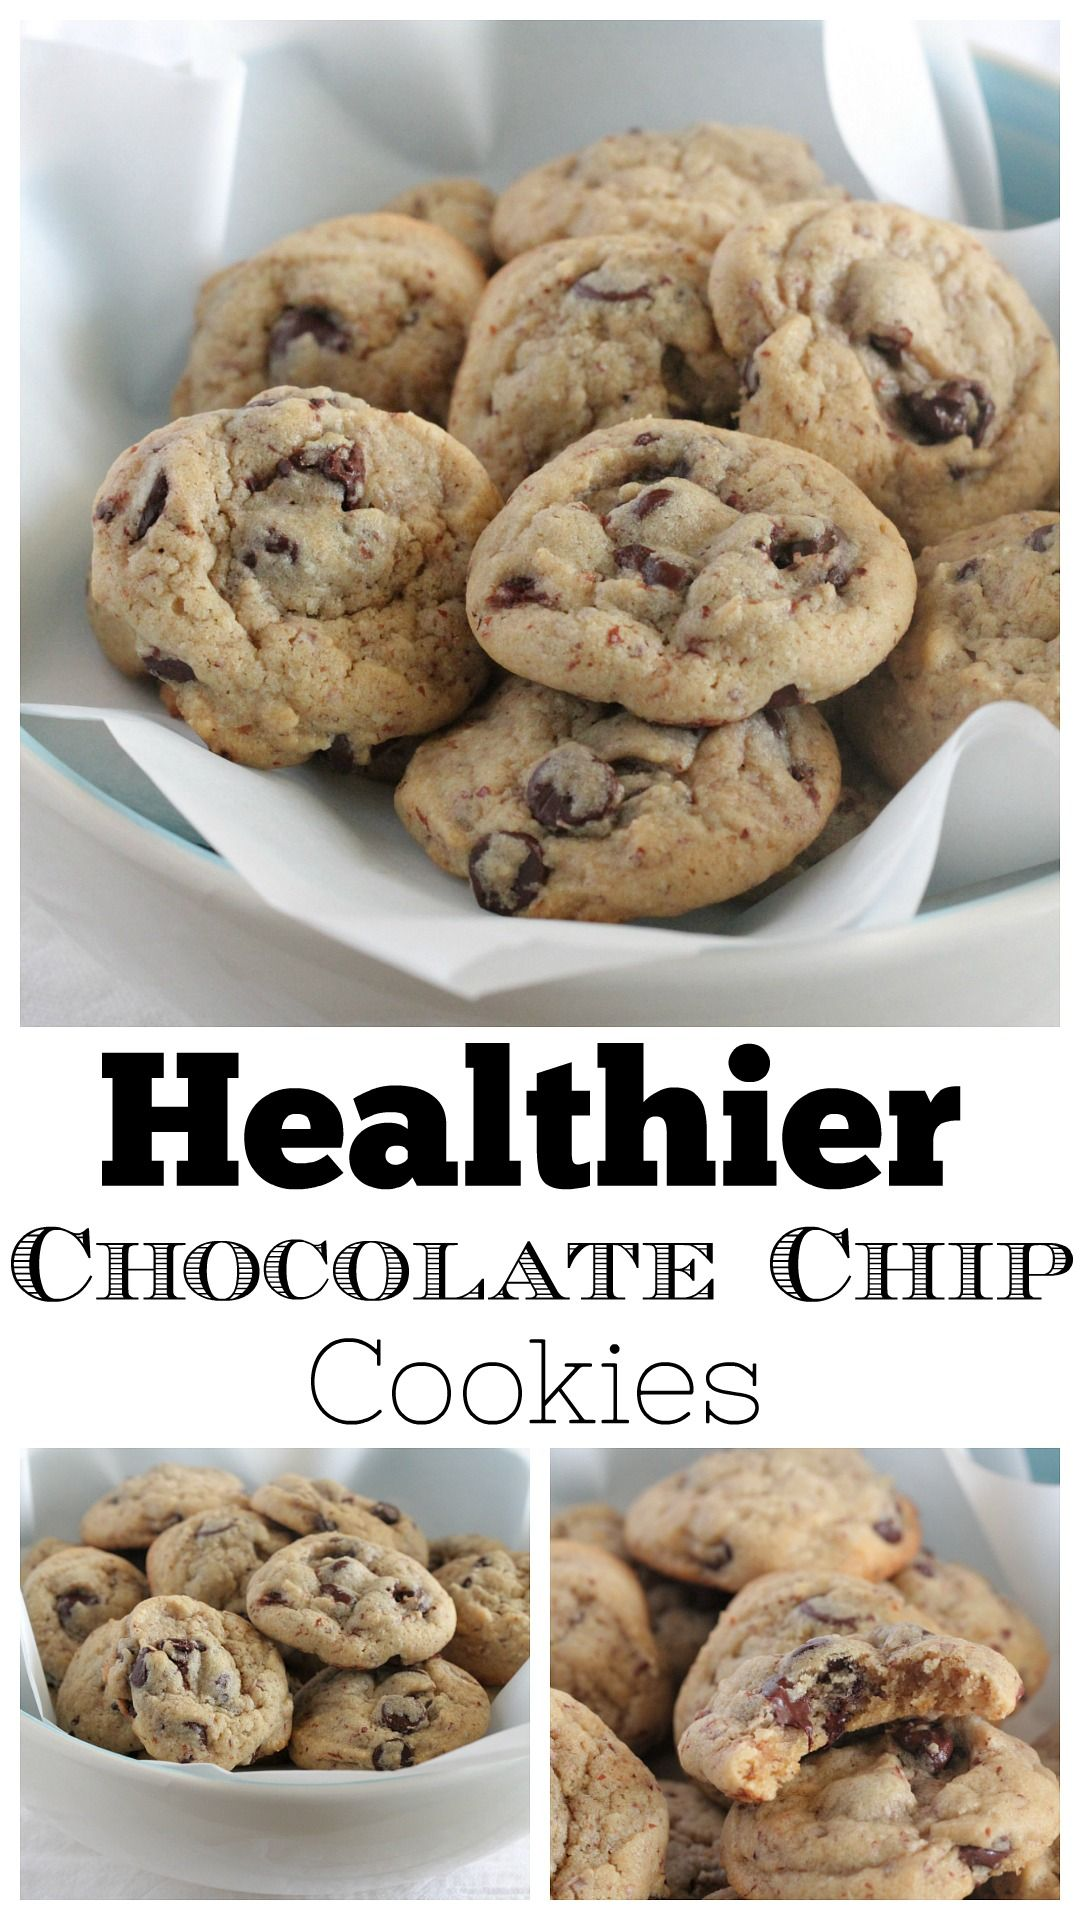 Healthier Chocolate Chip Cookies Recipe Healthy Chocolate Chip Healthy Cookie Recipes Chocolate Chip Healthy Chocolate Chip Cookies